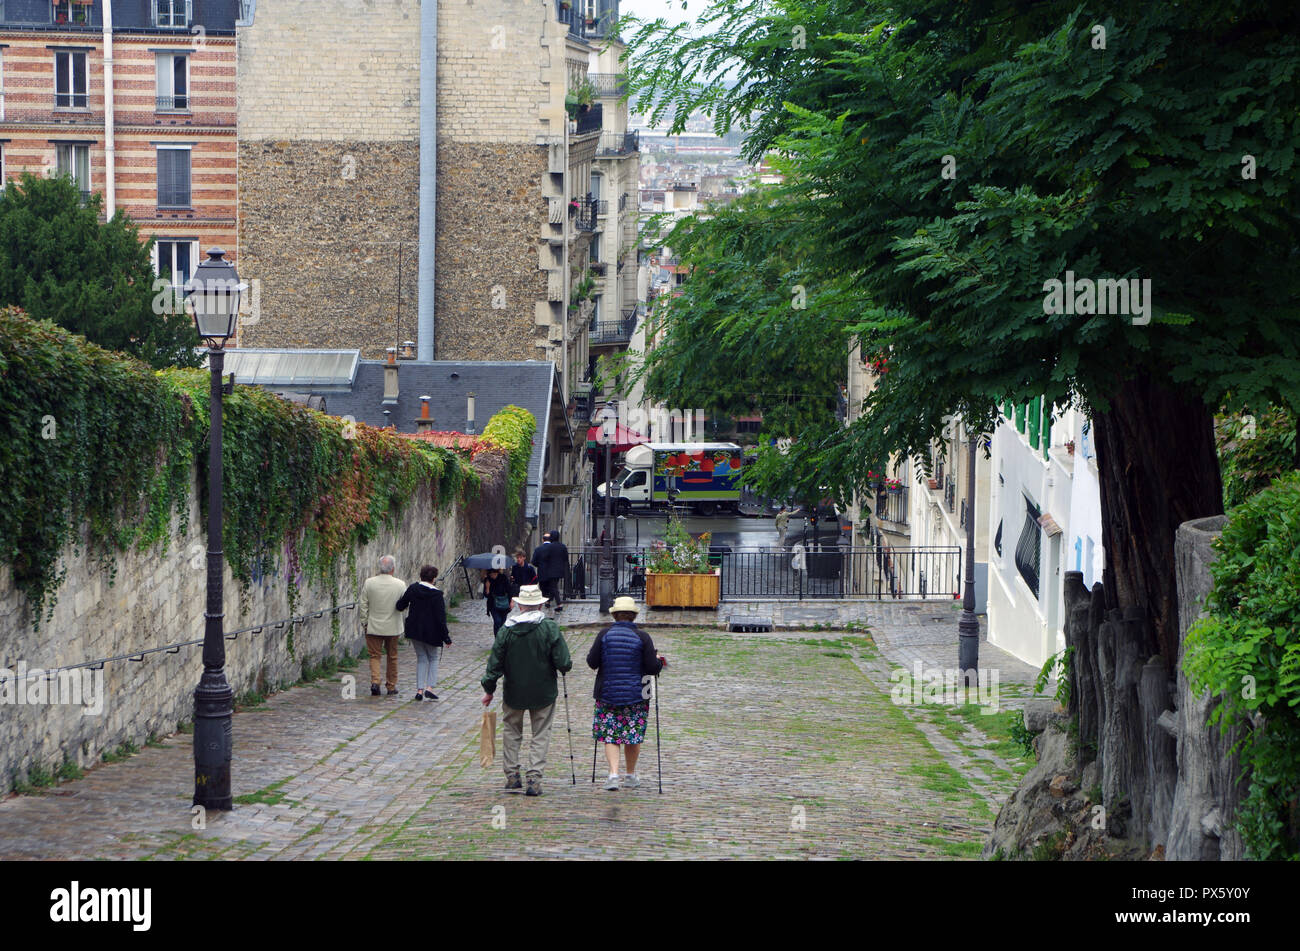 Couple of tourists or Parisians walking in the cobbled streets of Paris - Stock Image